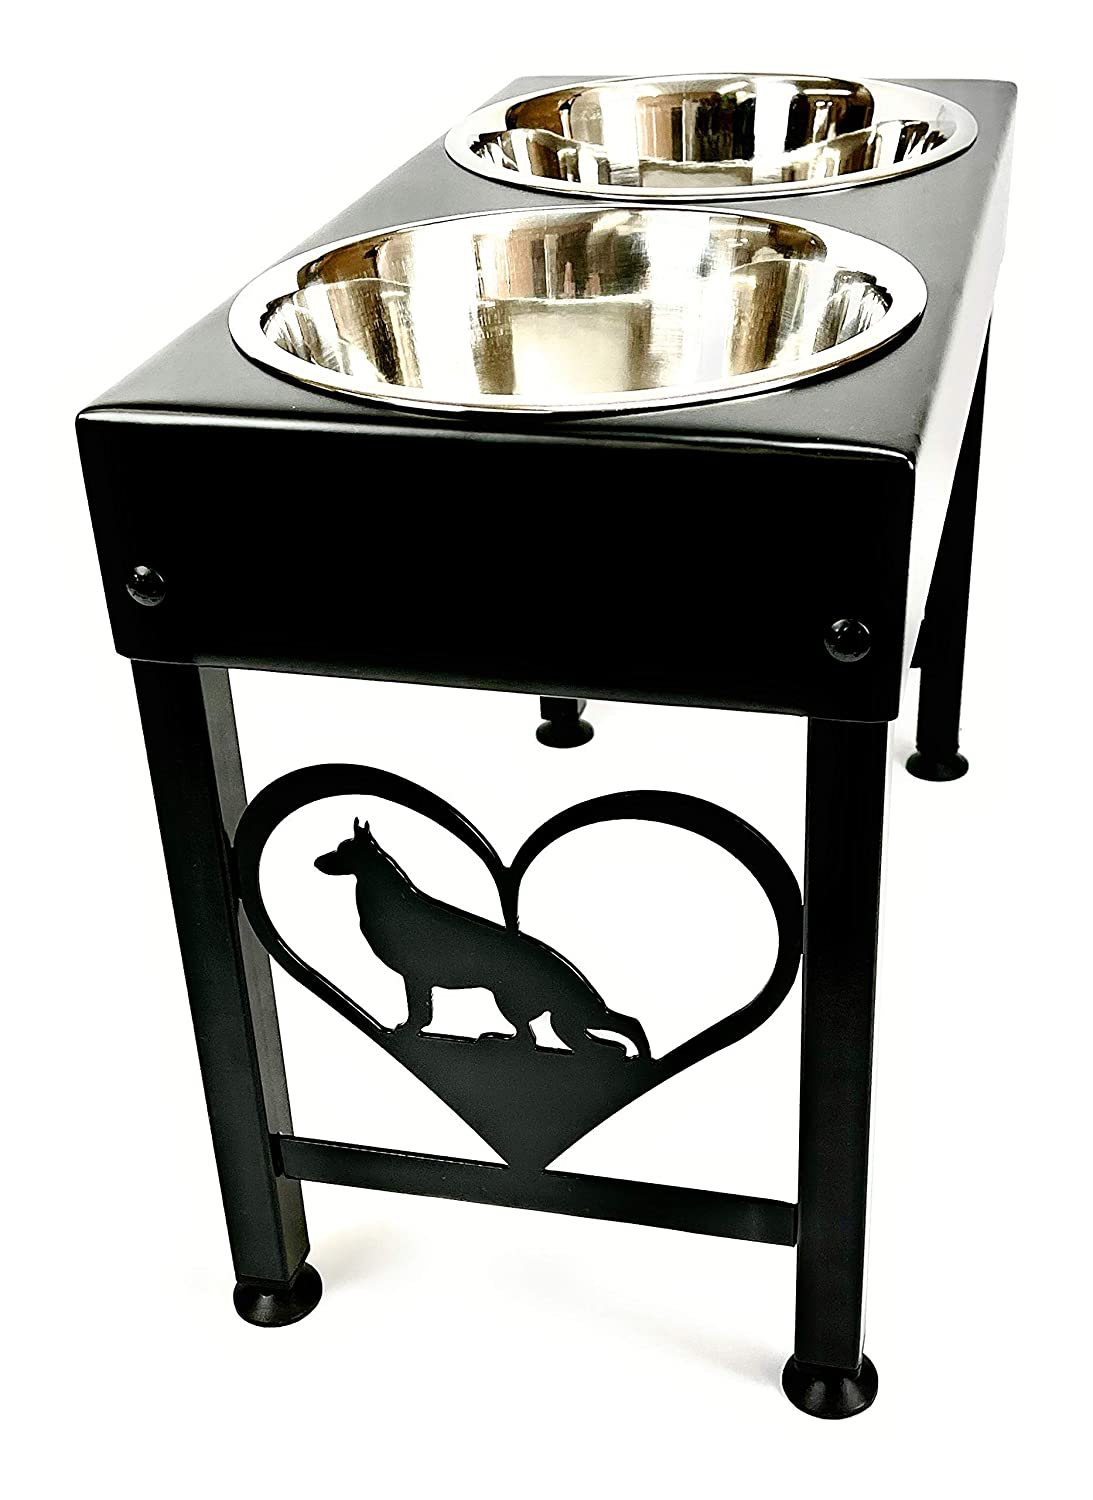 Elevated Dog Feeder Stand for German Shepherd Double Stainless Steel Bowls 16